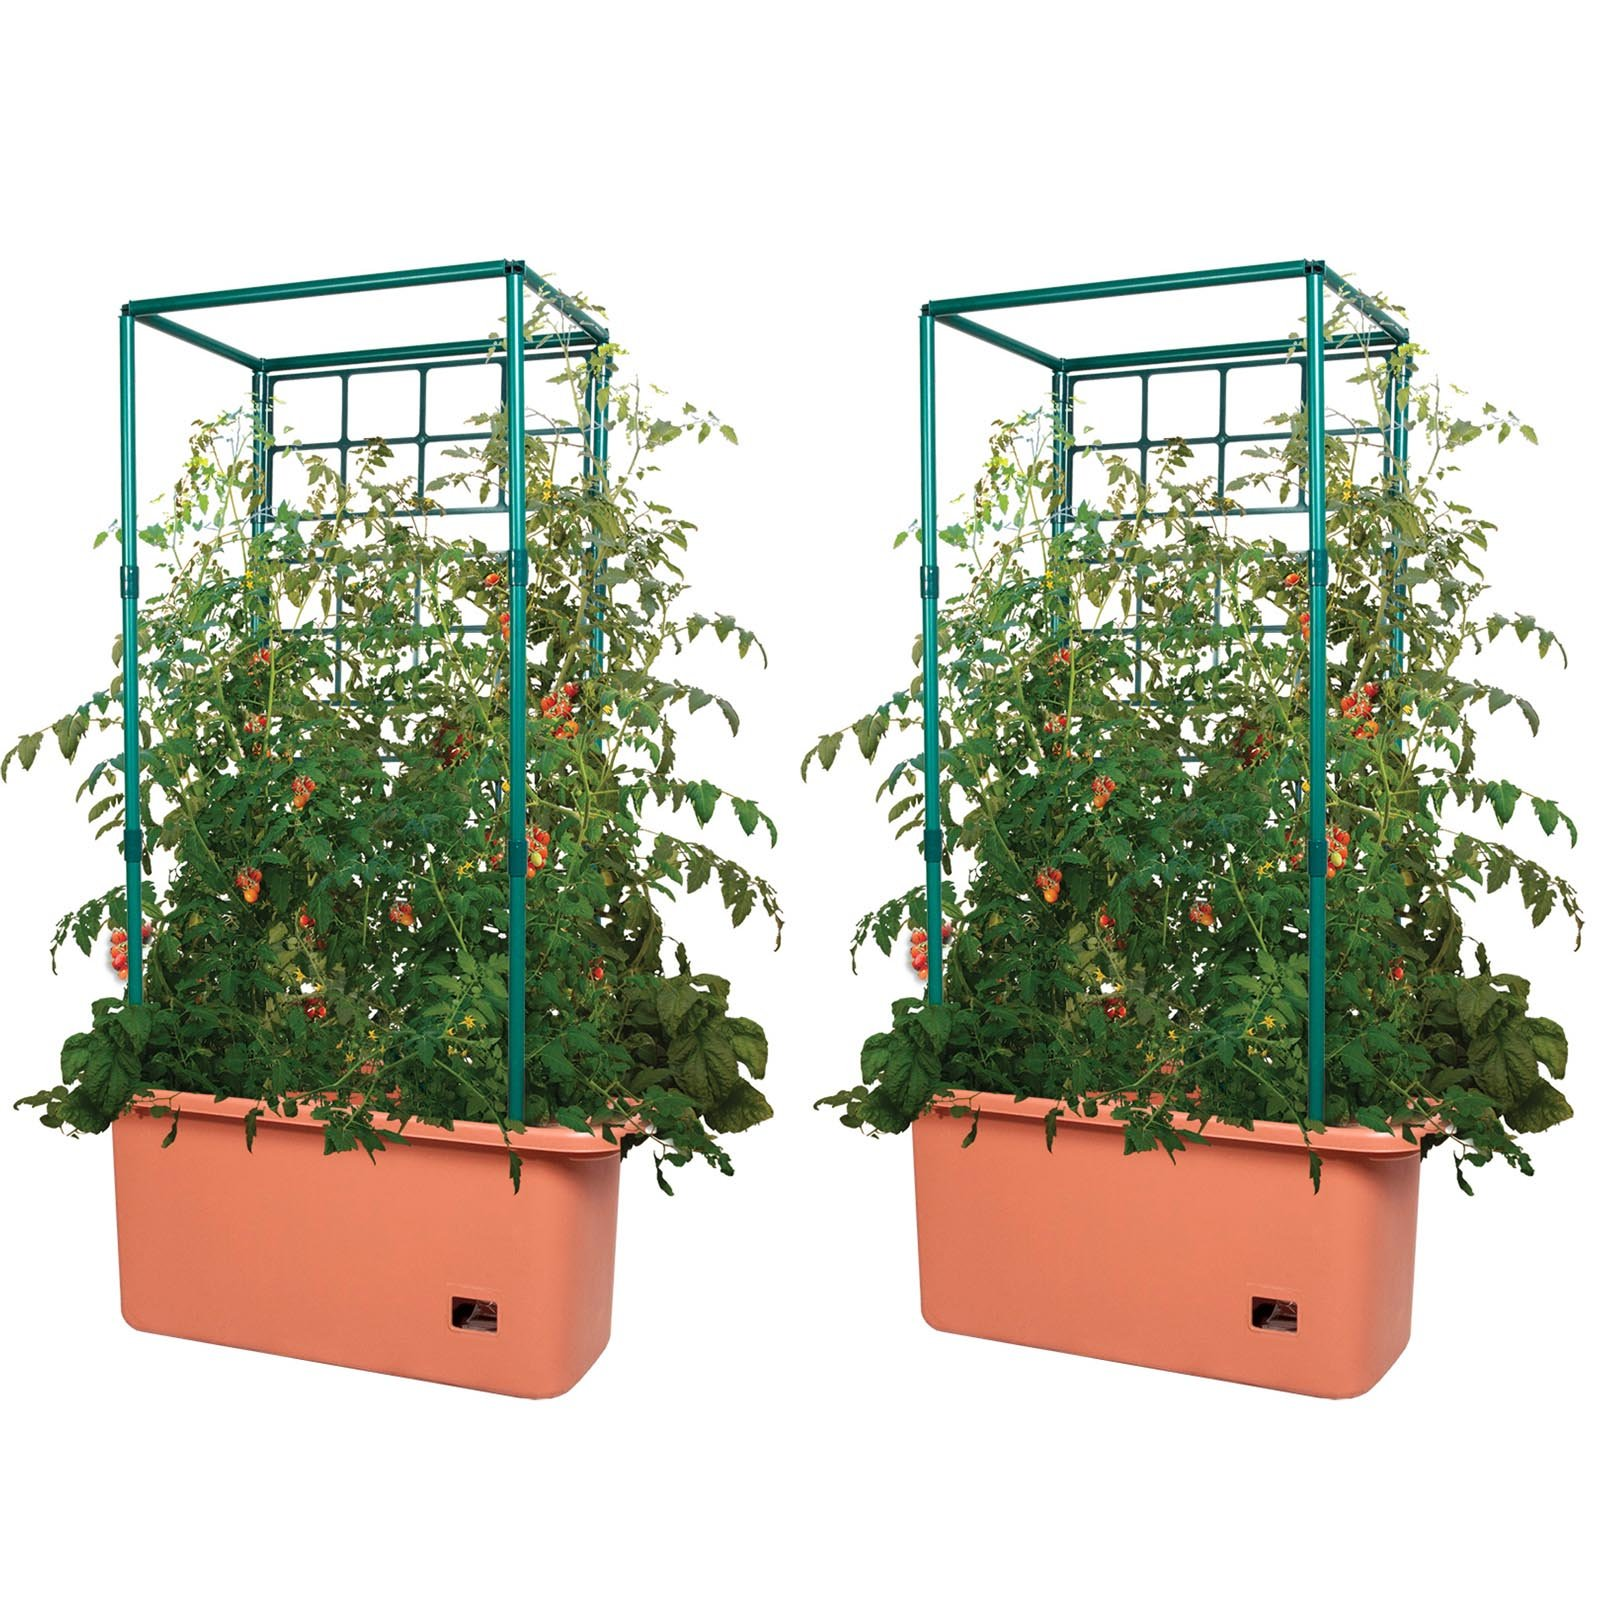 Hydrofarm 10 Gallon Self Watering Tomato Trellis Garden on Wheels, Pair | GCTR by Hydrofarm